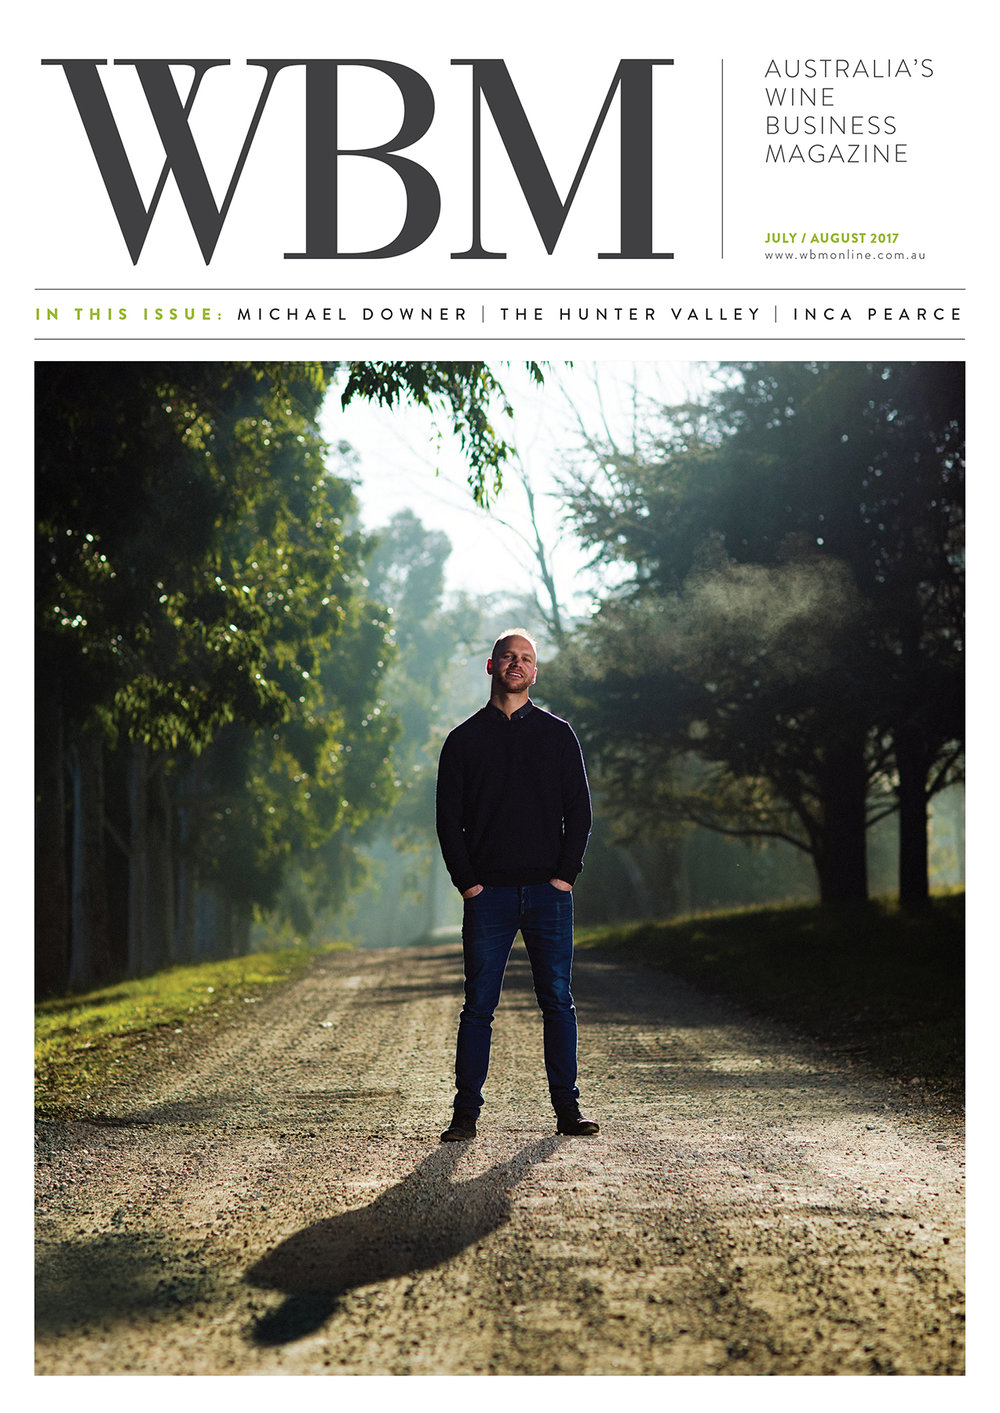 WBM 1707 July August 2017 cover.jpg